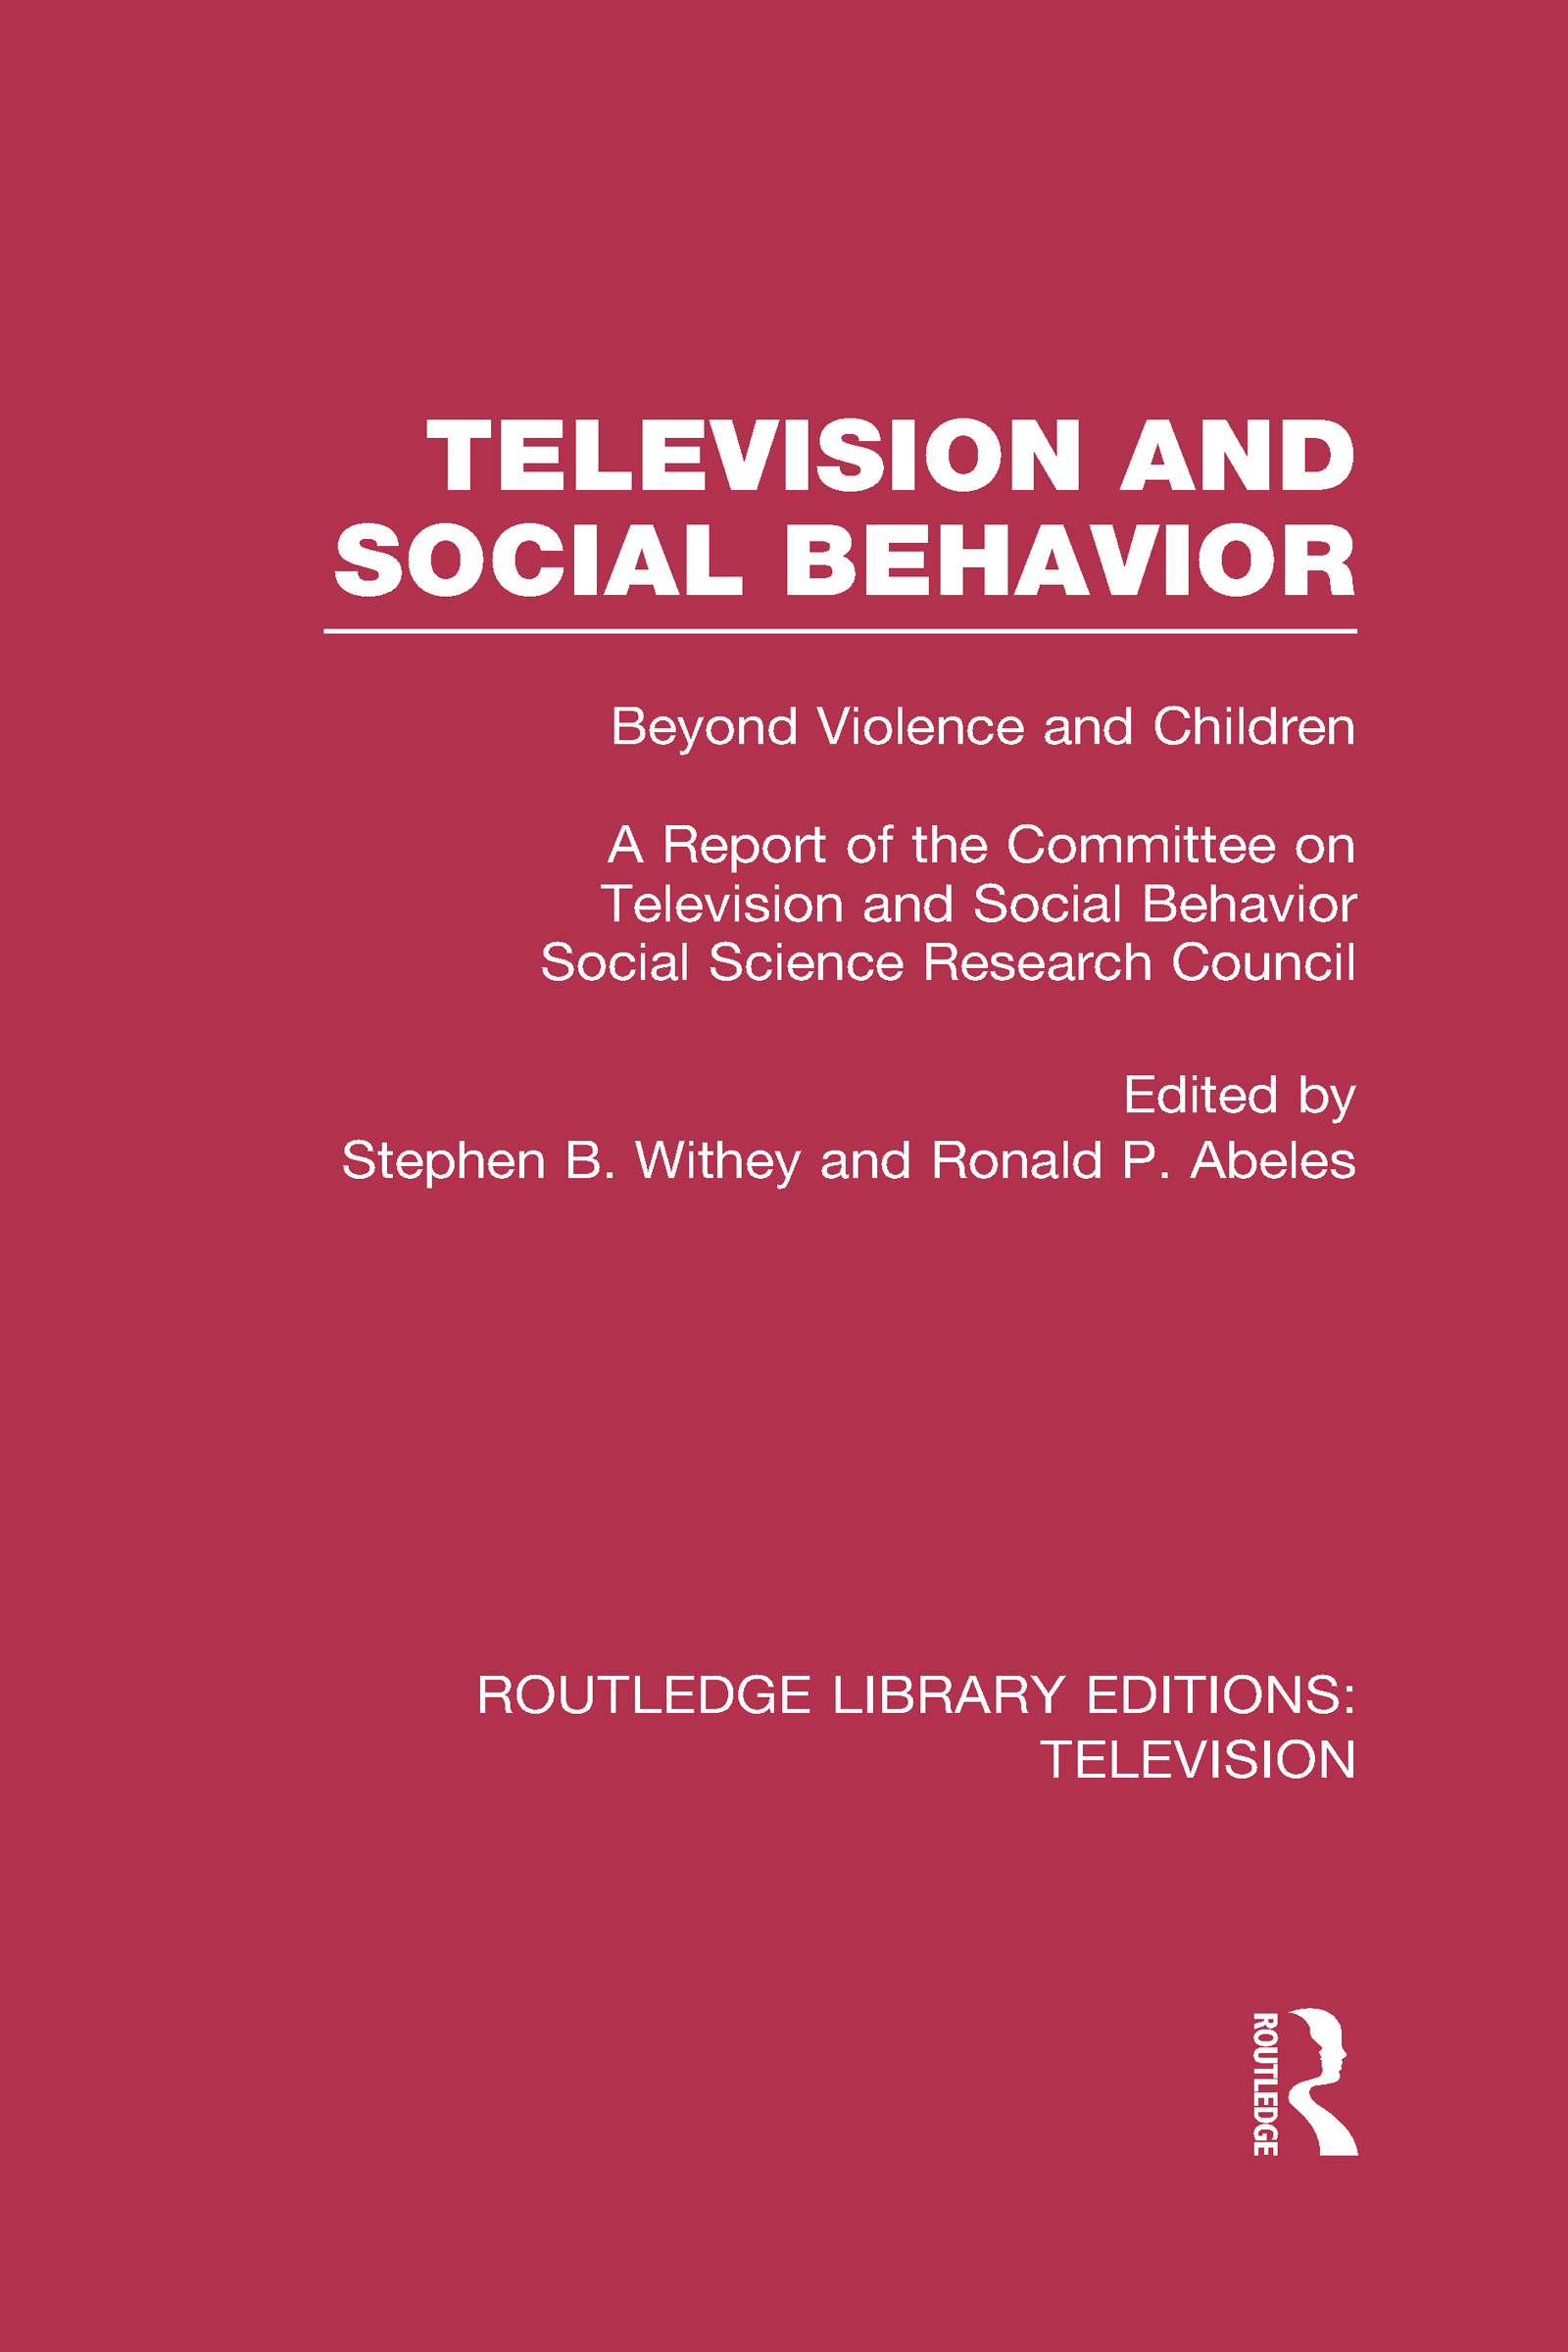 Television and Social Behavior: Beyond Violence and Children / A Report of the Committee on Television and Social Behavior, Social Science Research Council book cover